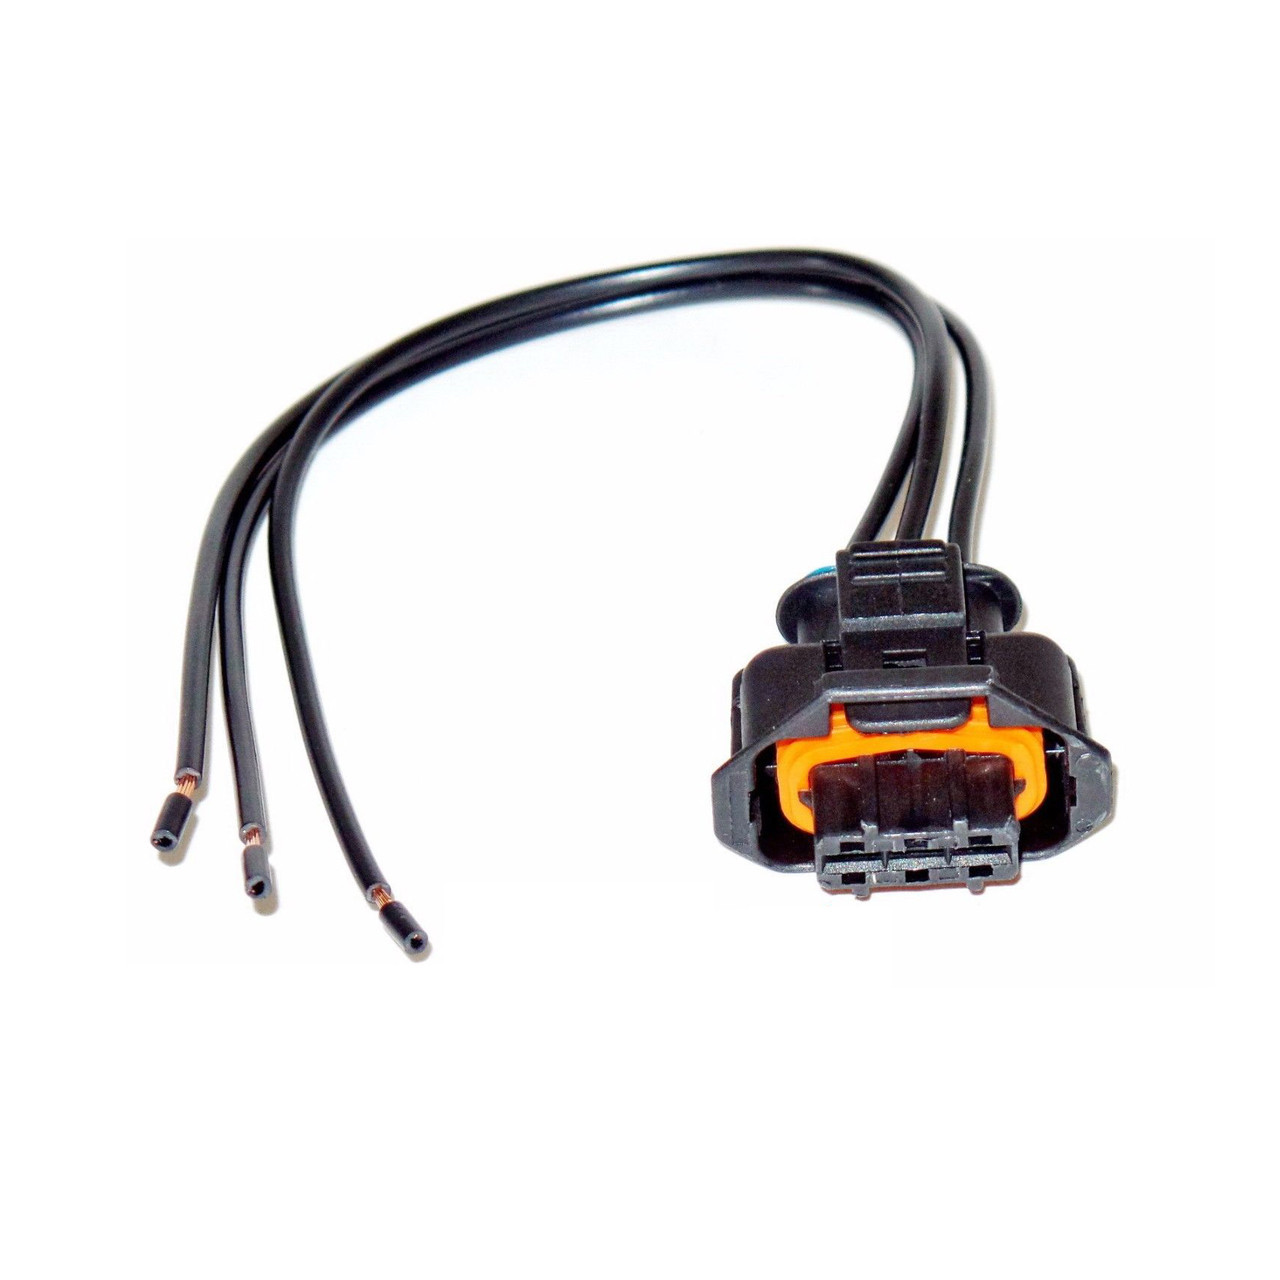 small resolution of gm ls3 map sensor wiring diagram wiring library map sensor connector harness pigtail for 2008 2013